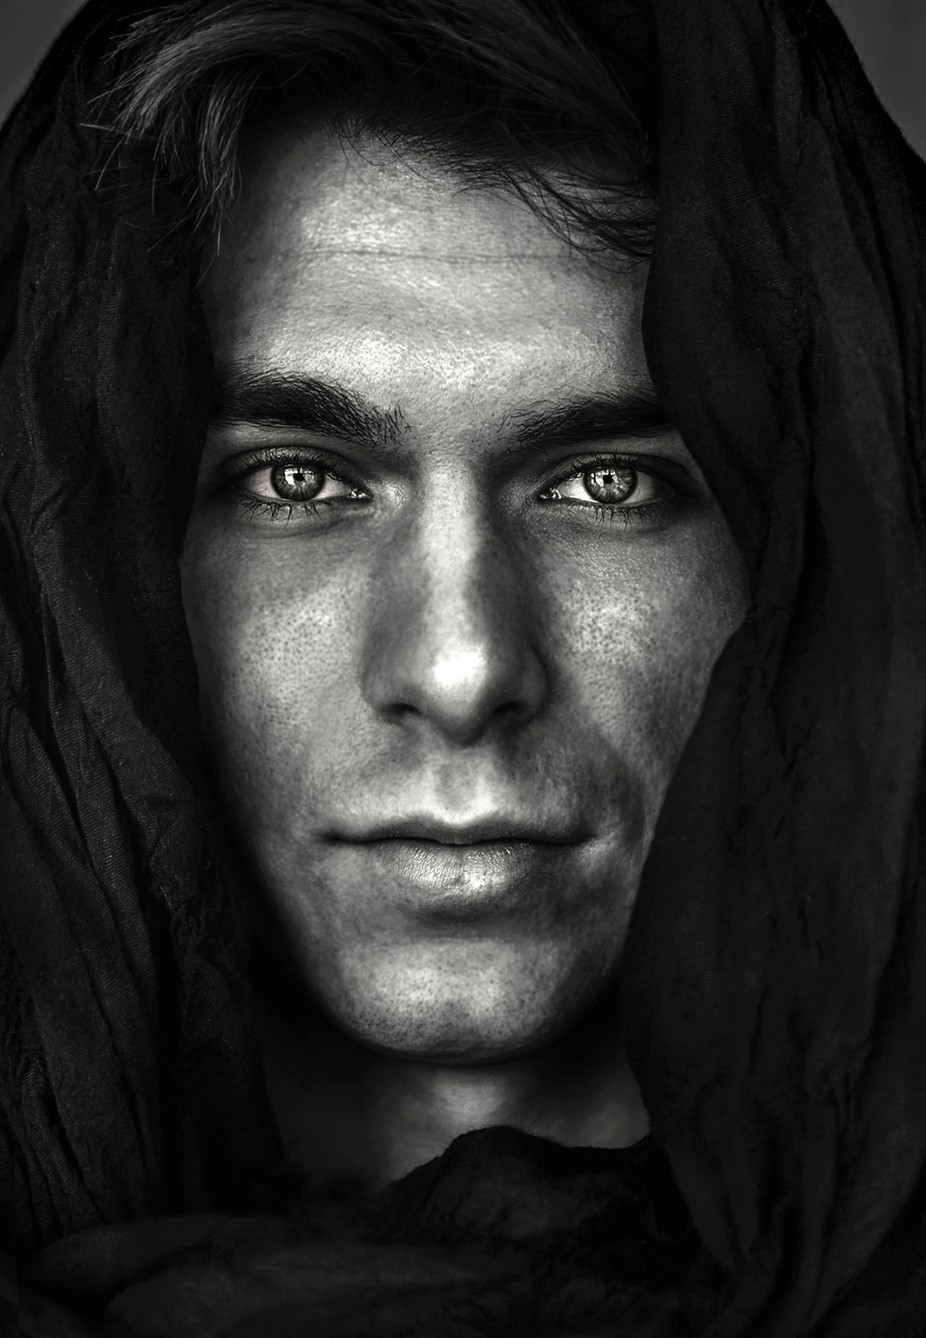 Soulintheyes by armandoespinoza - Dramatic Portraits Photo Contest